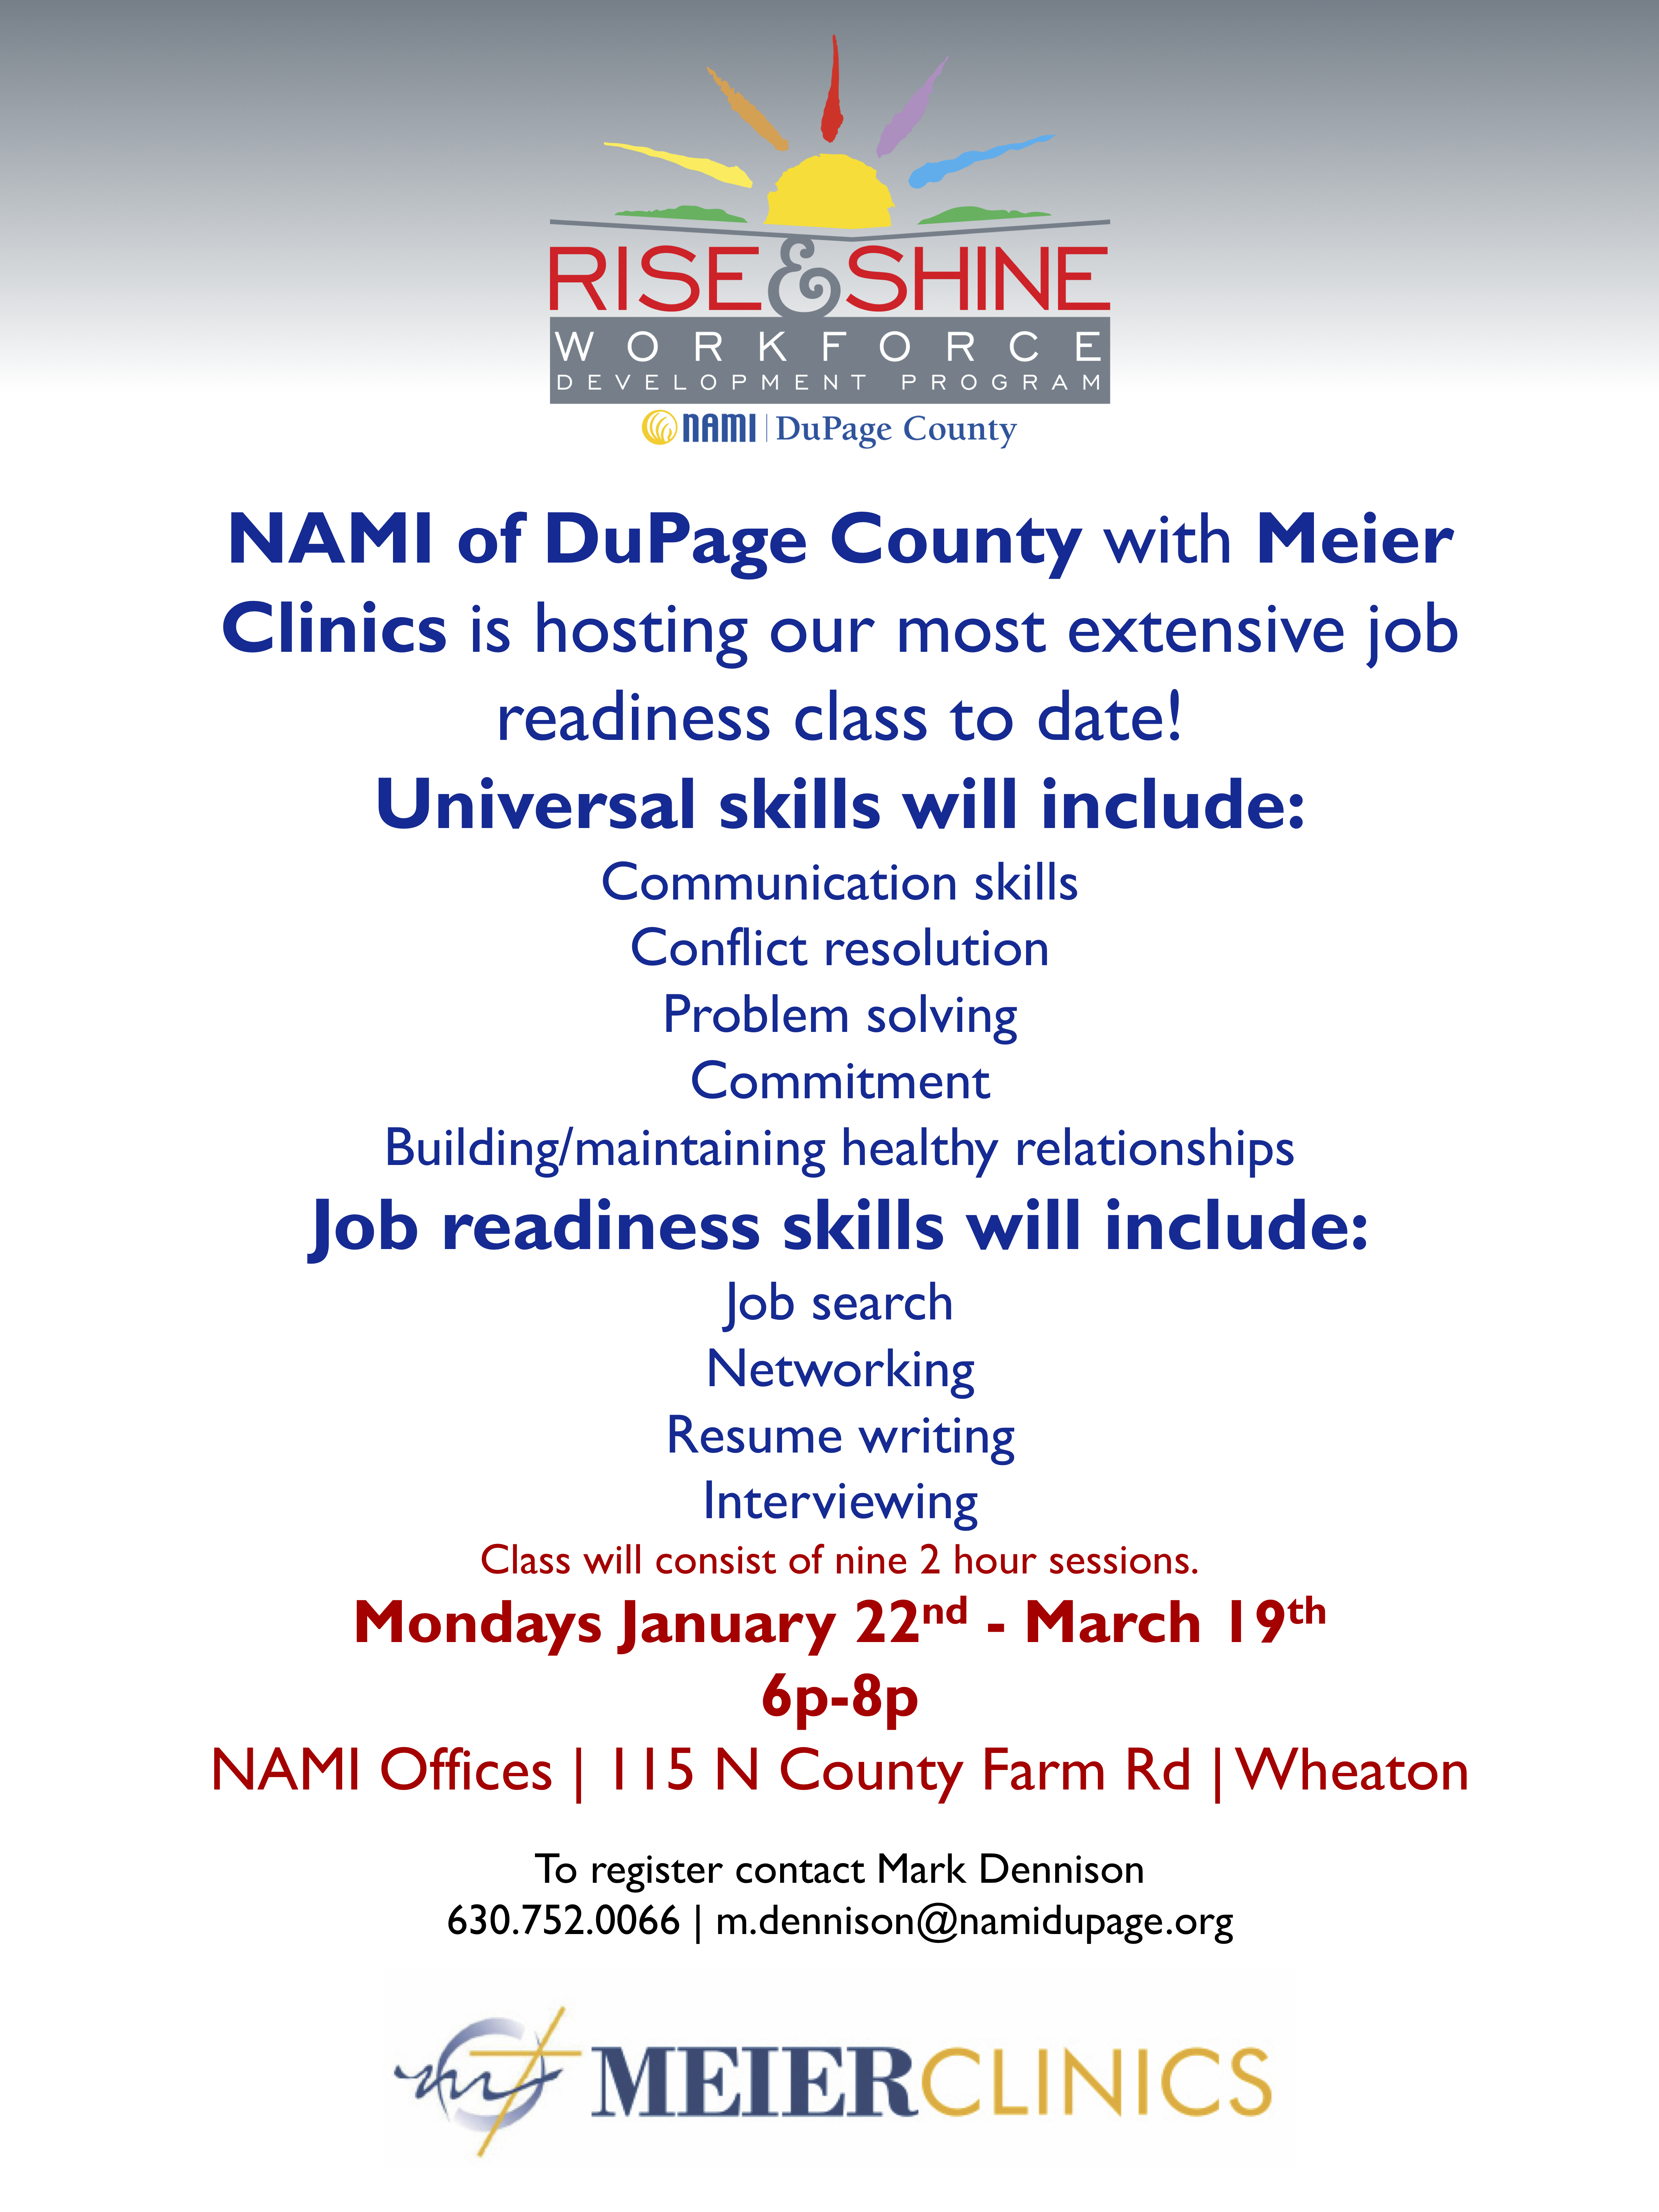 Workforce Development Program | NAMI of DuPage County, IL